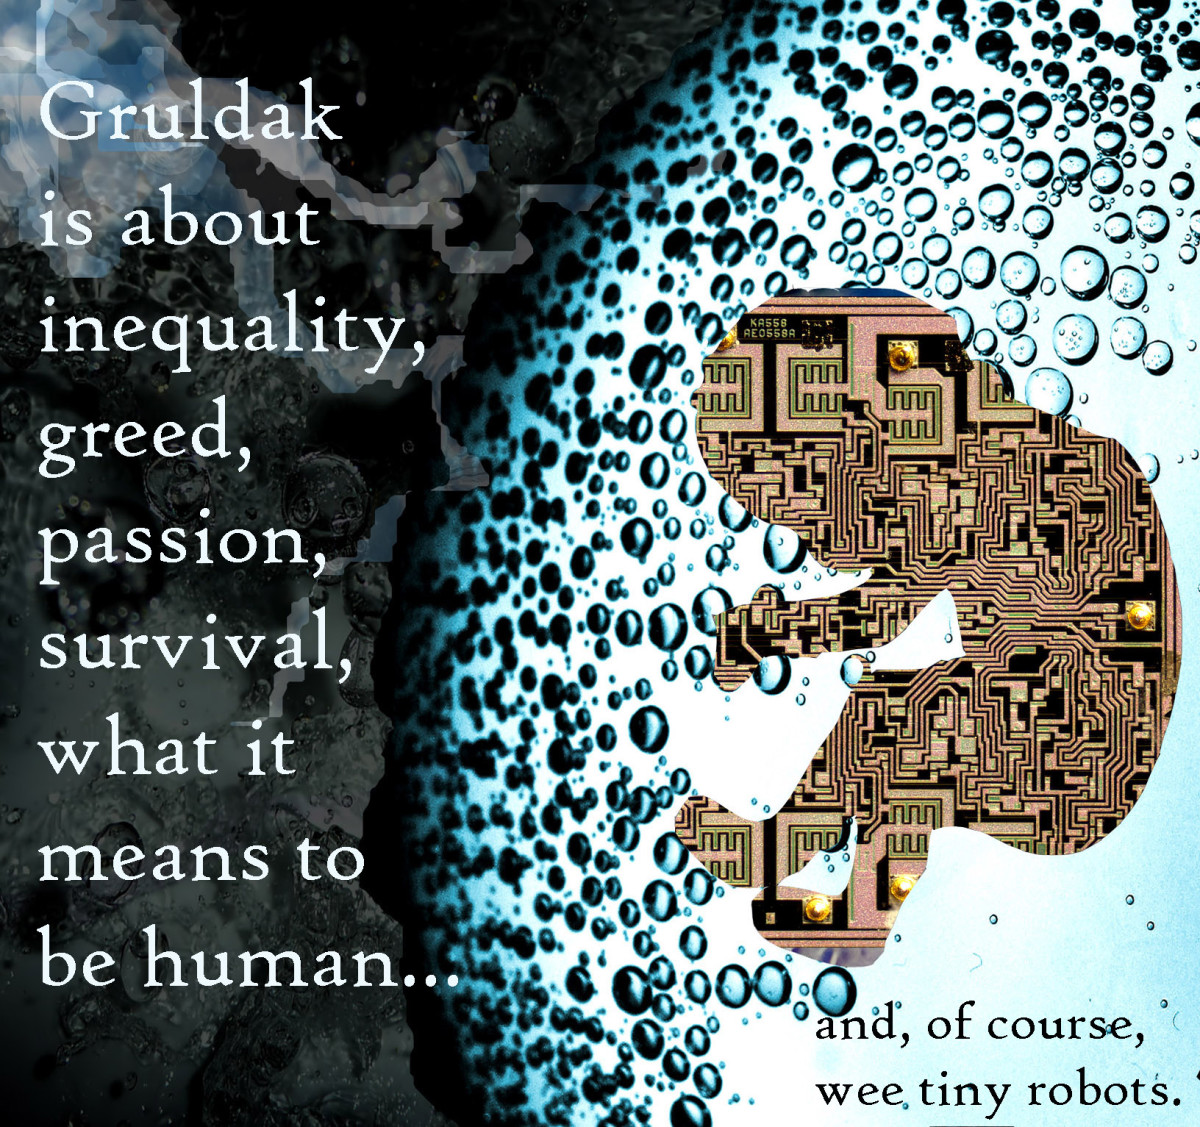 Chapter Three of Gift of the Gruldak, serialized science fiction that's free to read online on HubPages